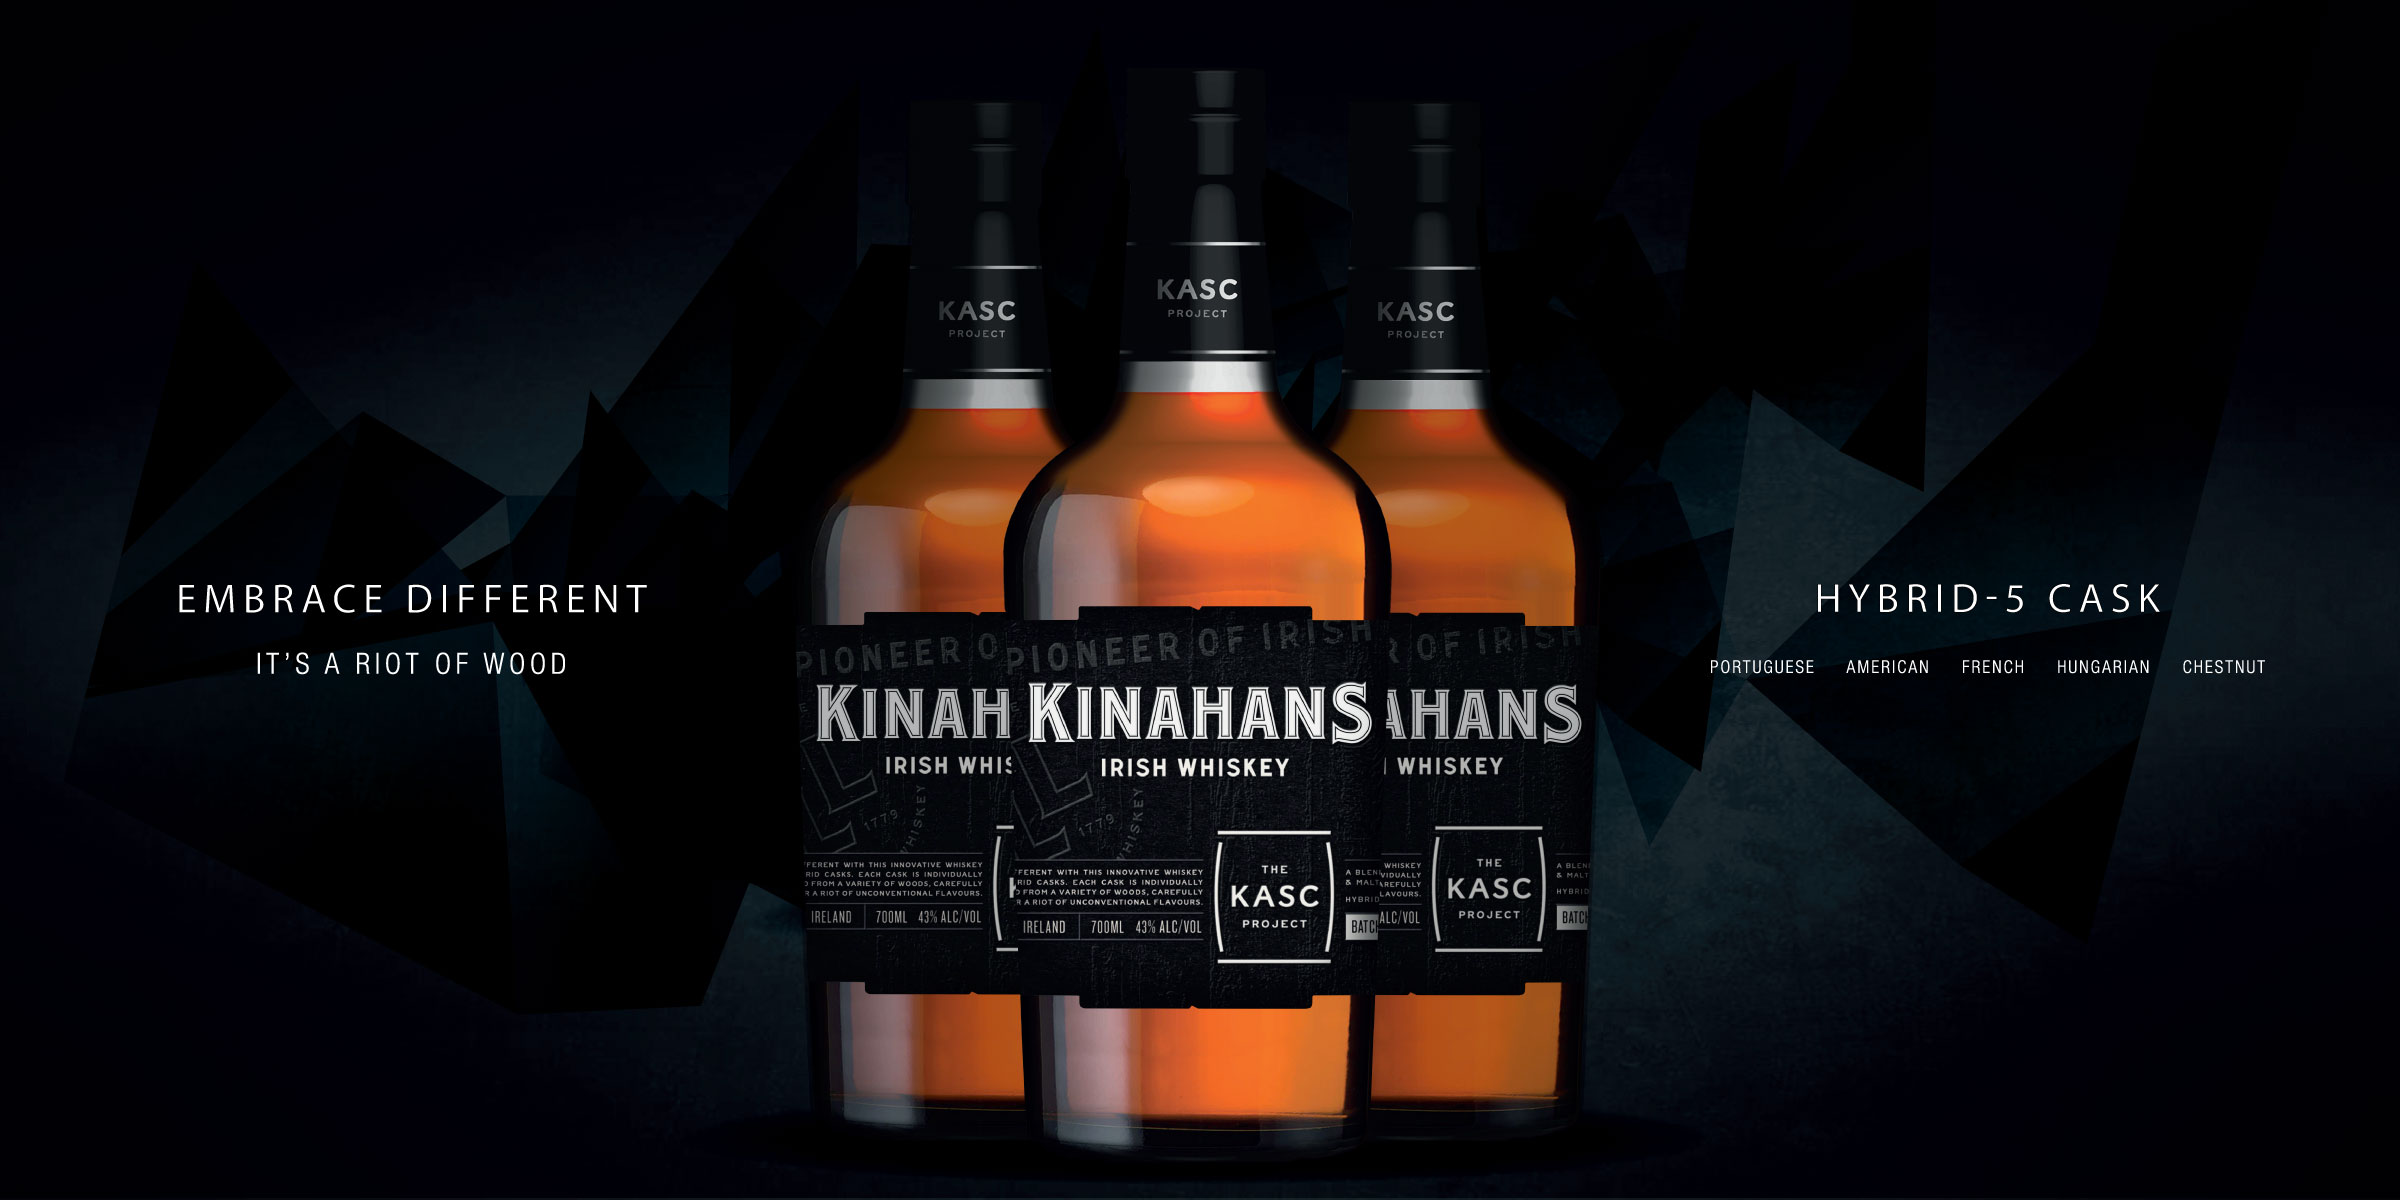 Kinahans whiskey kask project